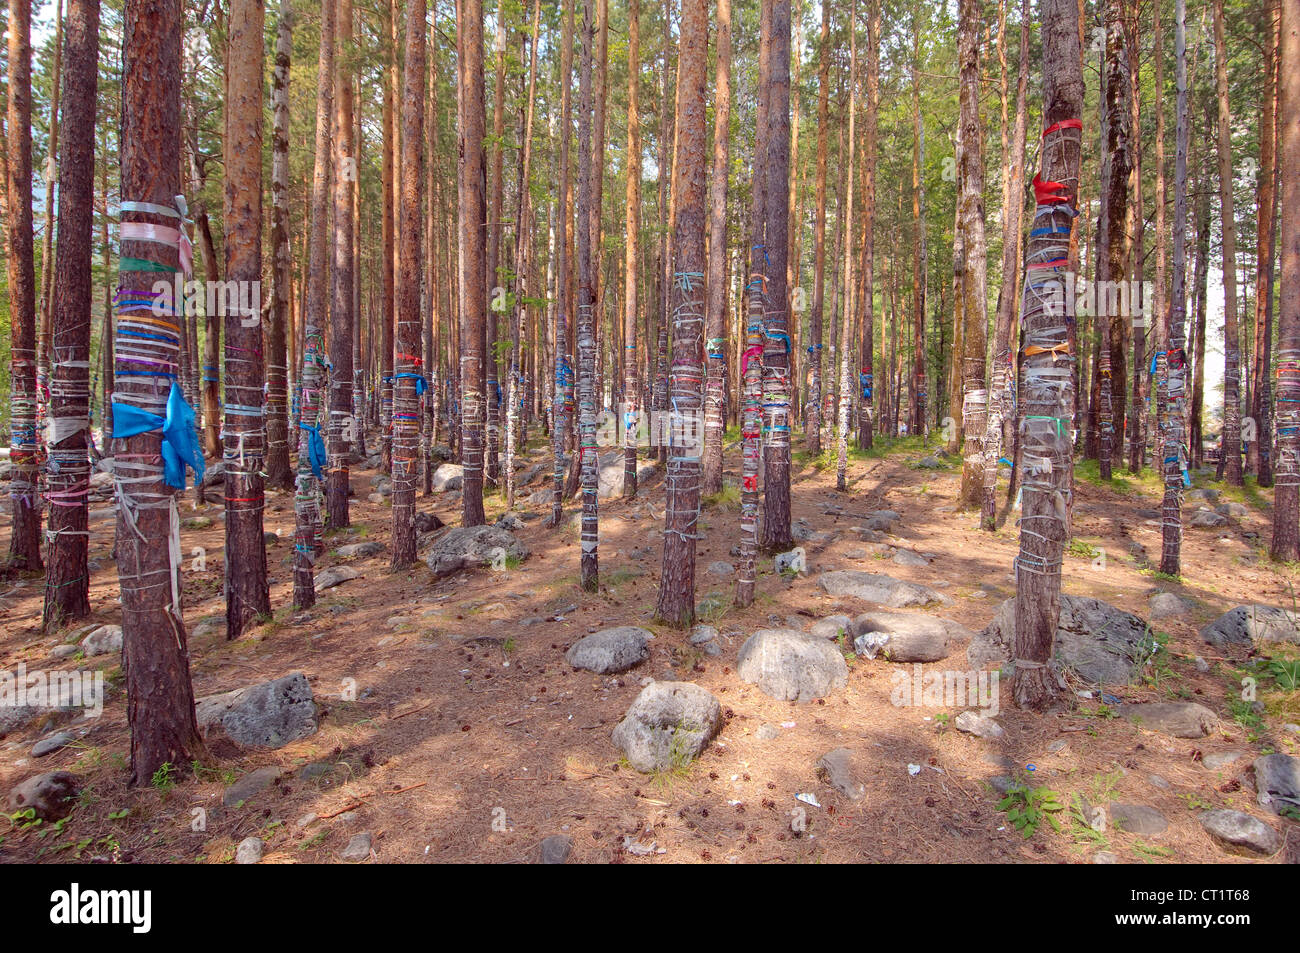 the sacred grove, Arshan, Tunkinsky District, Republic of Buryatia, Siberia, Russian Federation - Stock Image